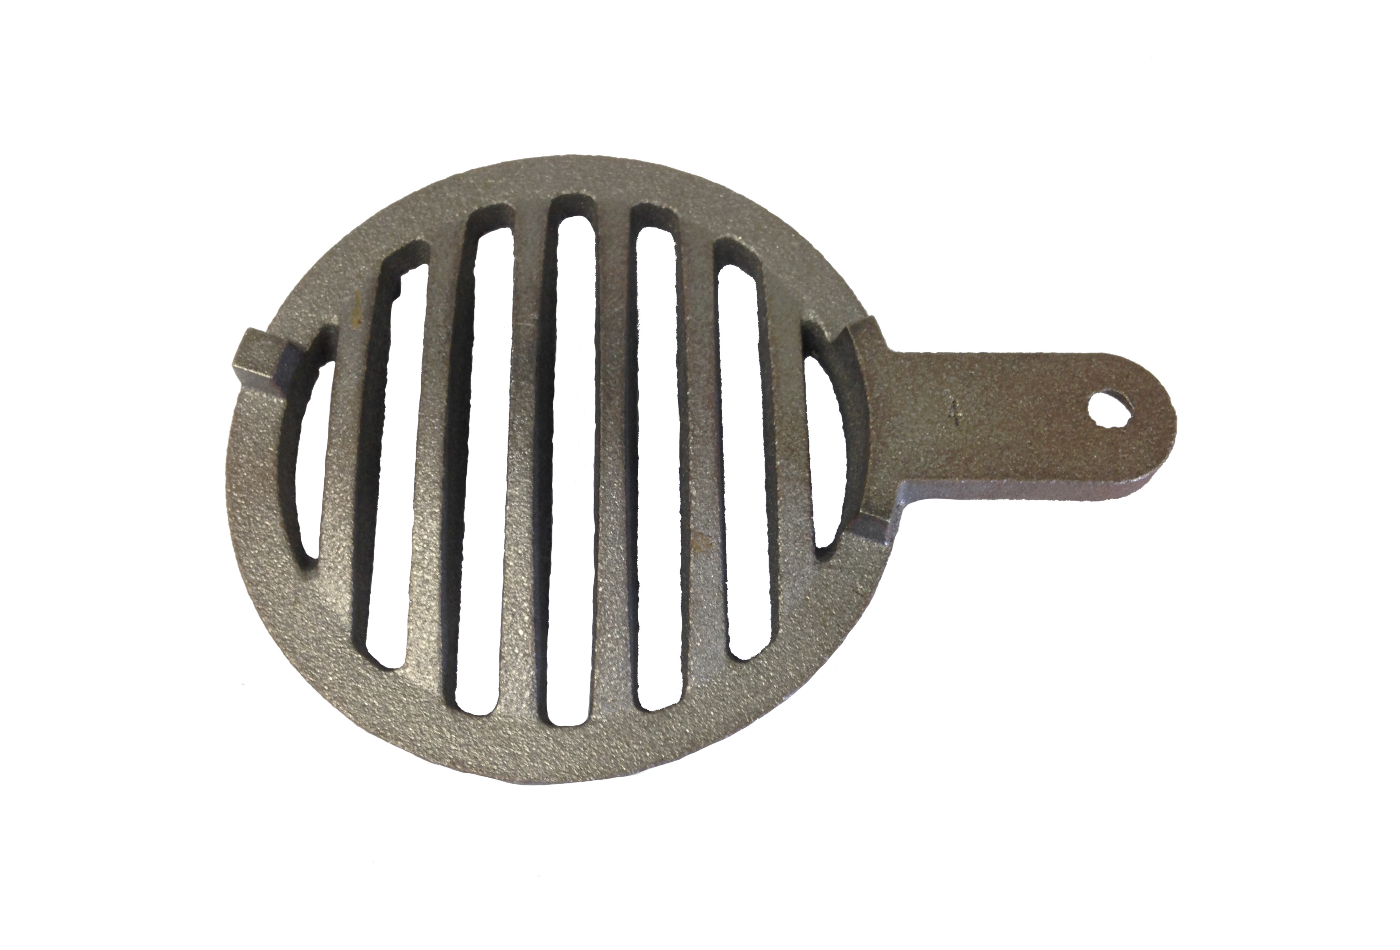 A replacement Grate suitable for Morso Squirrel 1410 stoves.